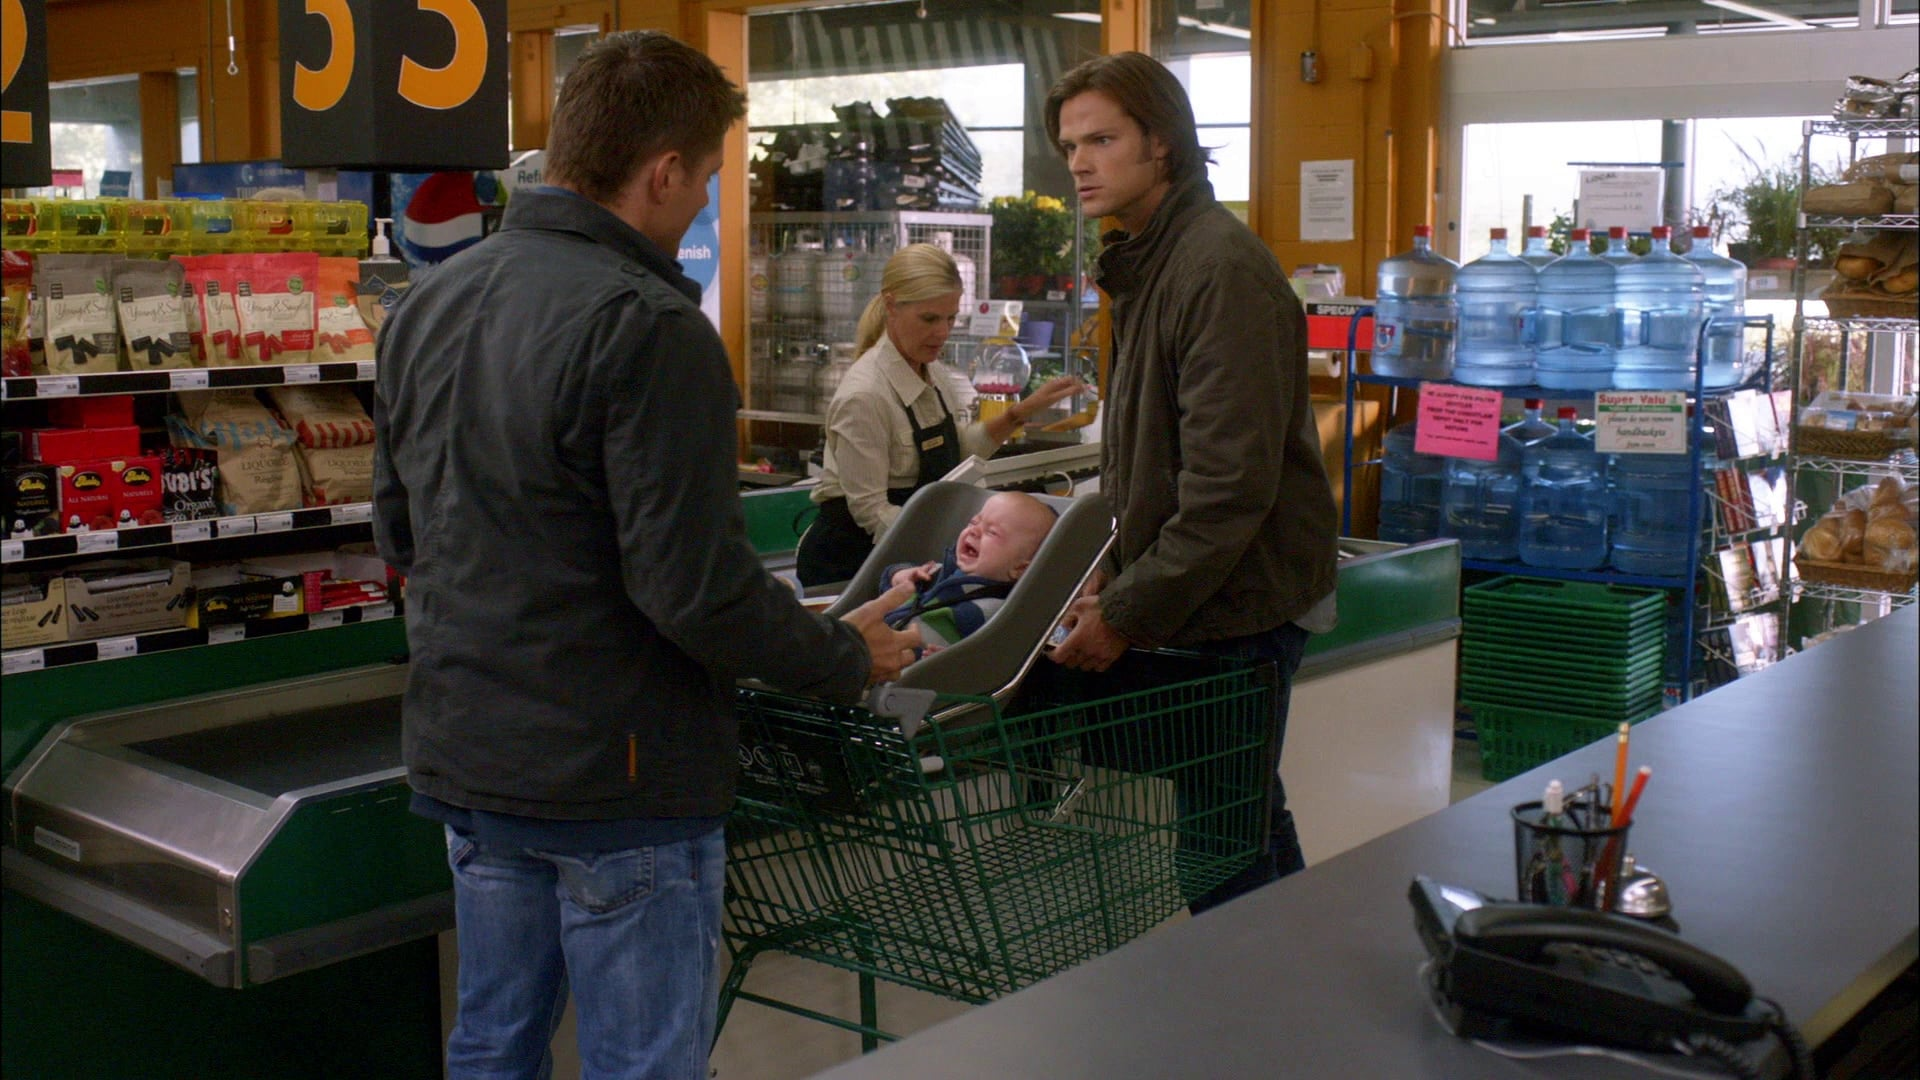 Supernatural - Season 6 Episode 2 : Two and a Half Men